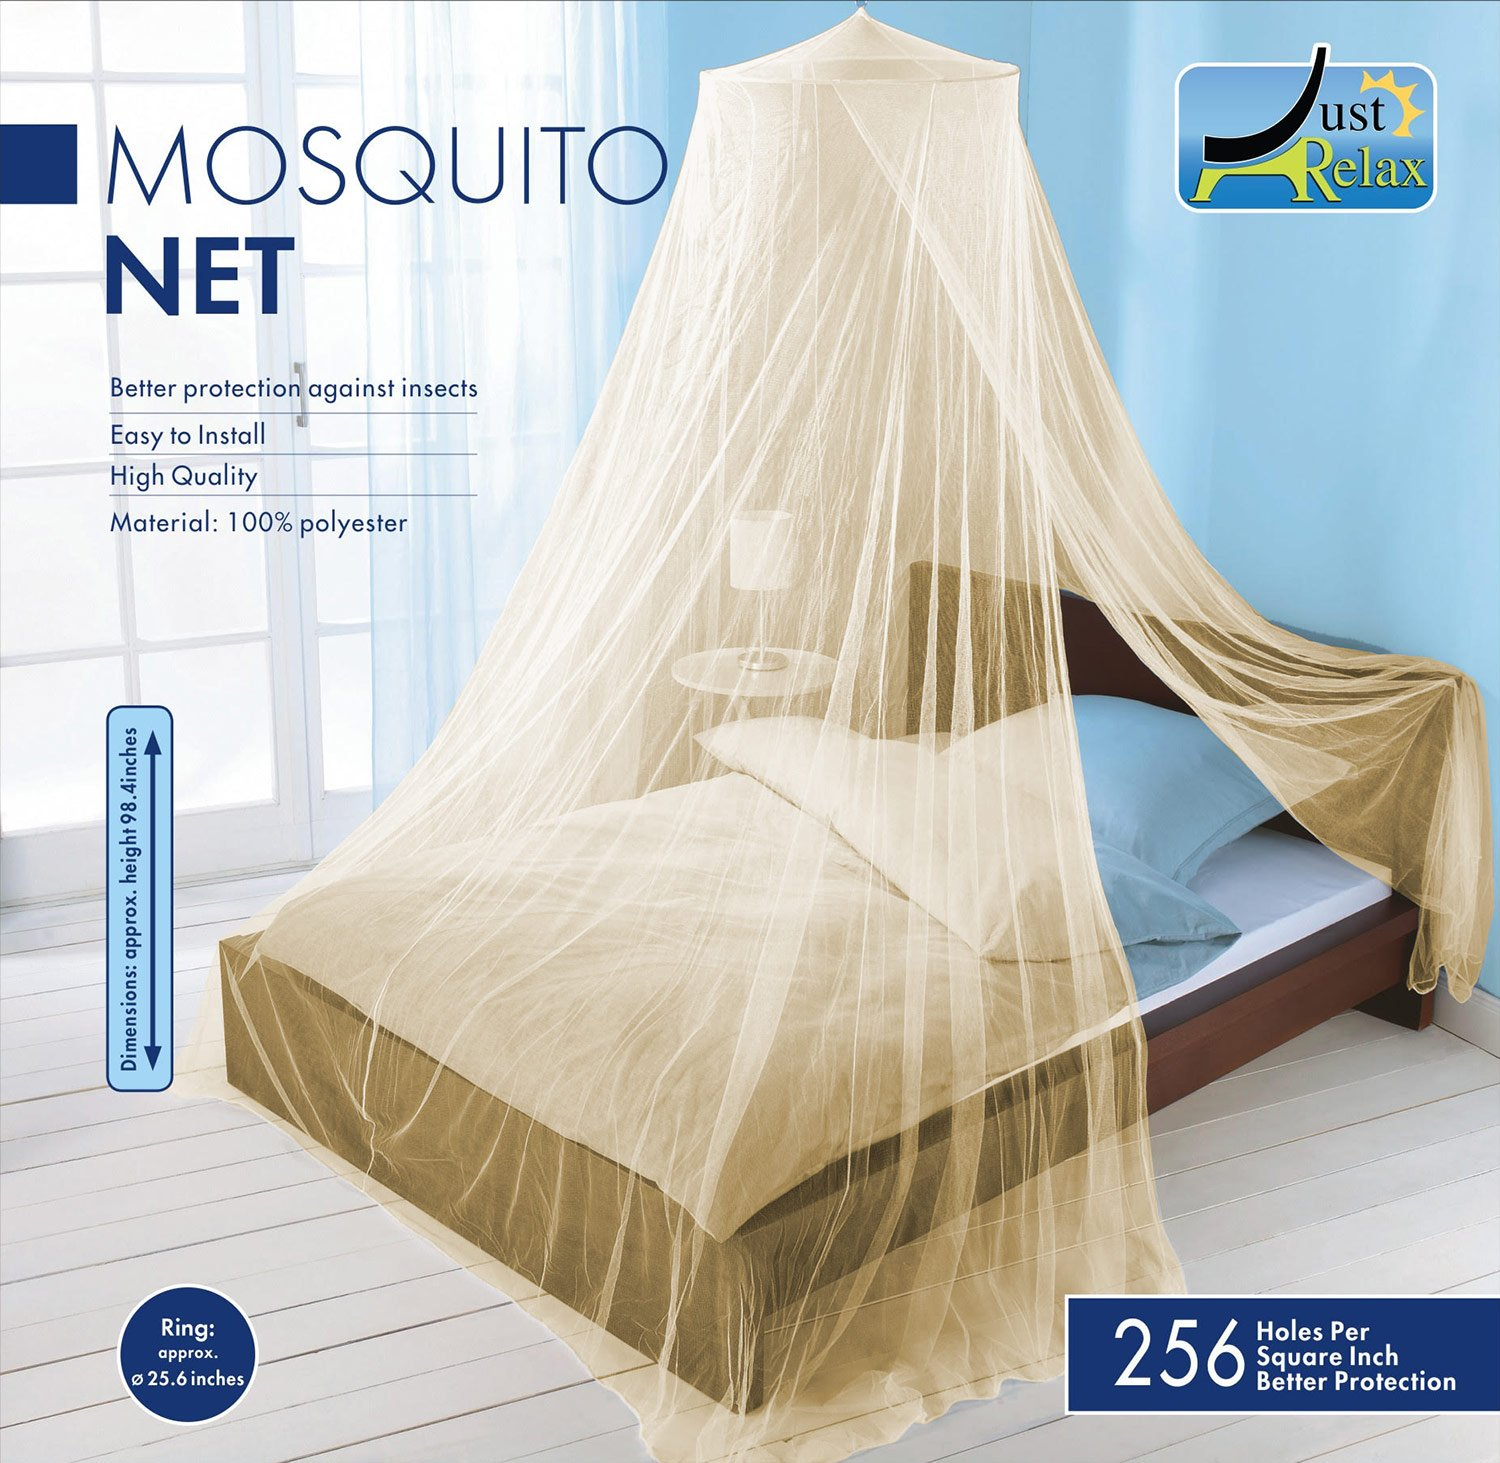 Just Relax MOSQUITO NET by, Elegant Bed Canopy Set Including Full Hanging Kit, Ideal For Indoors or Outdoors, Intended For a Perfect Fit for Covering Beds, Cribs, Hammocks (Beige, Twin/Full)